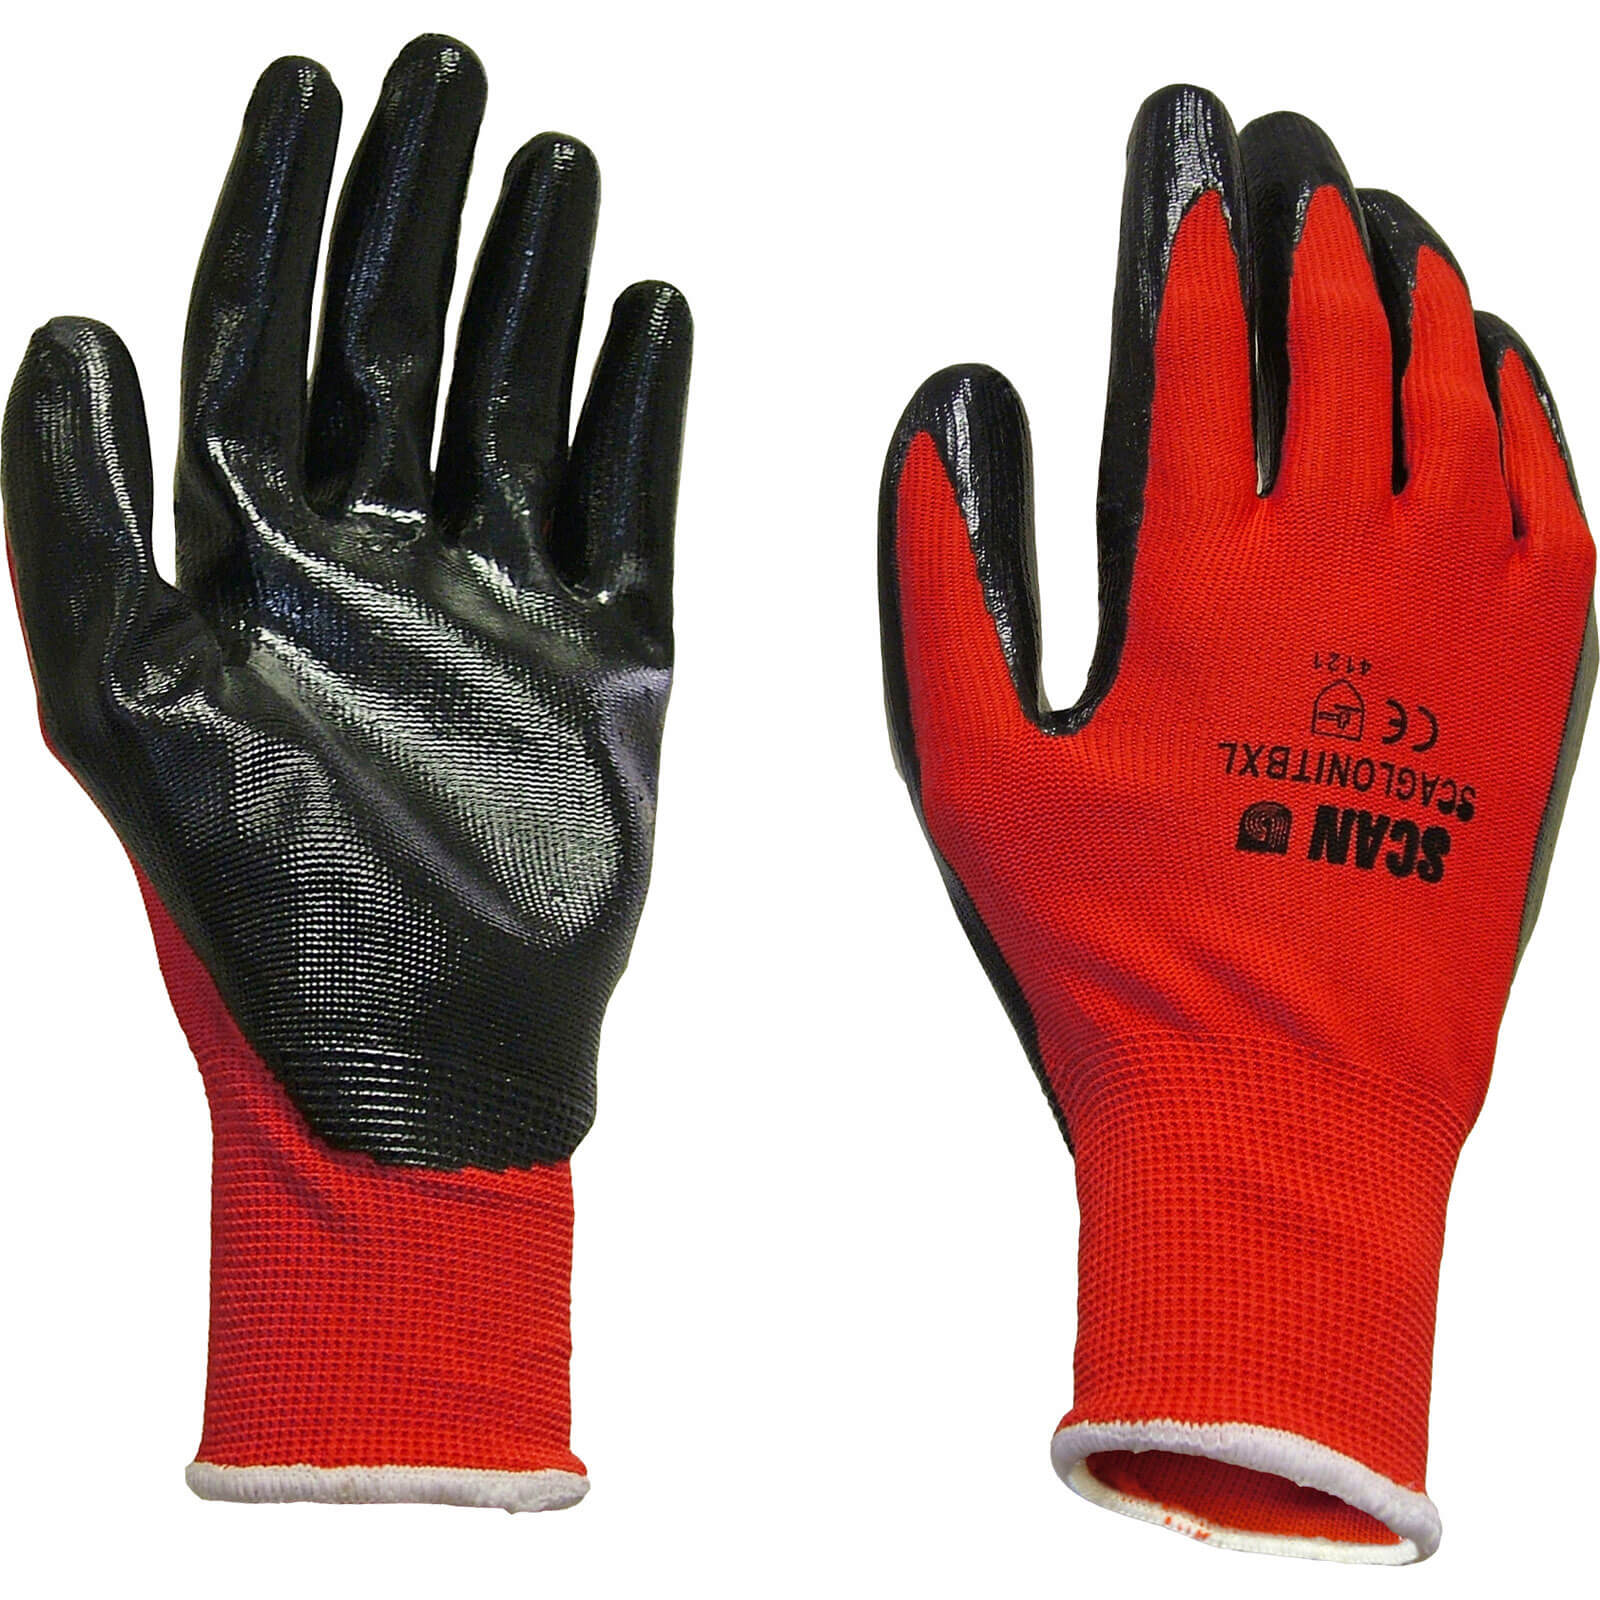 Tooled Up/Safety & Workwear/PPE/Scan Palm Dipped Nitrile Gloves Red / Black Large